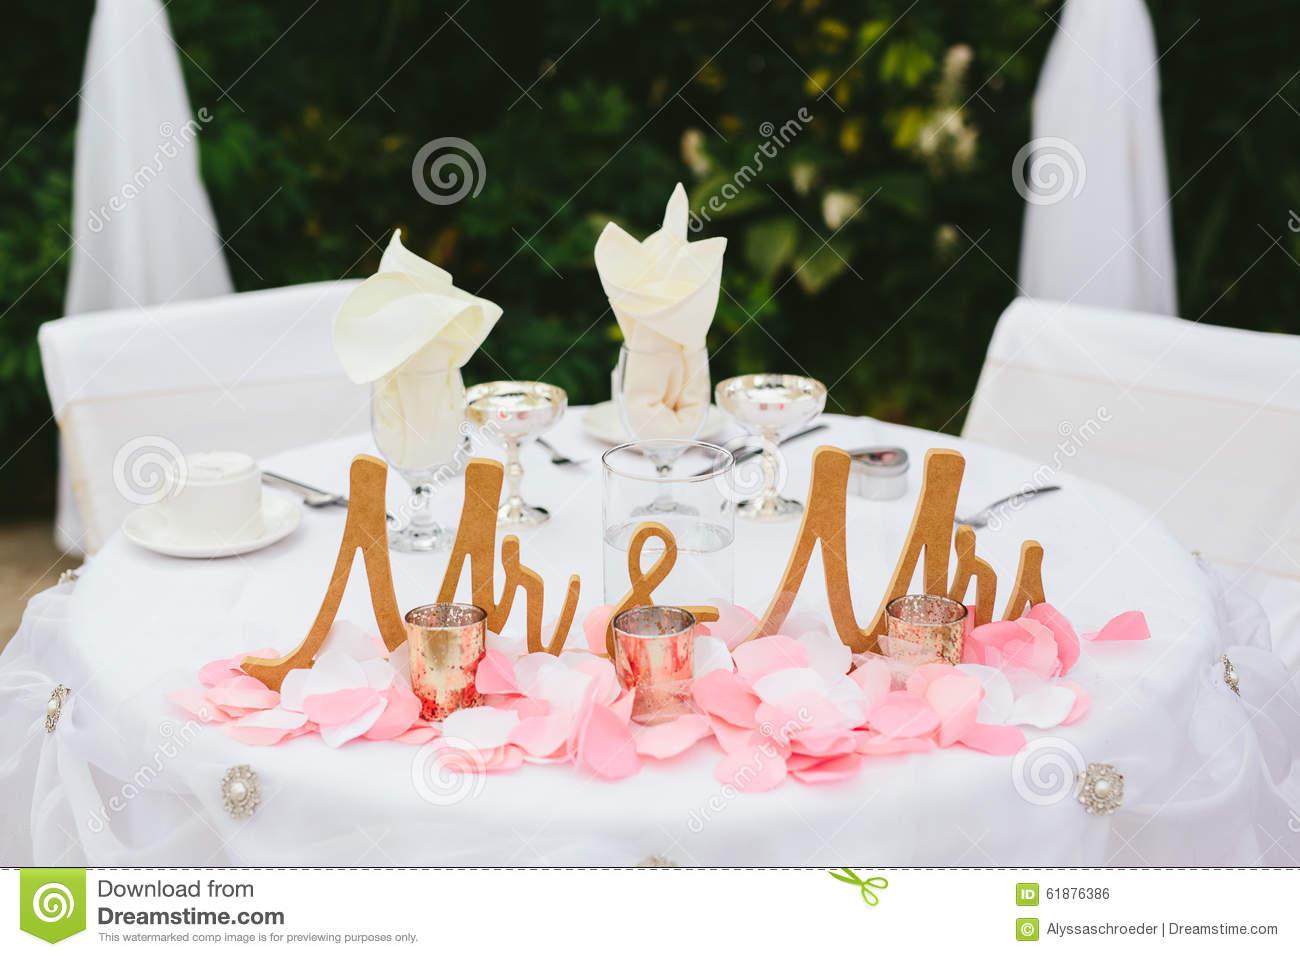 Captivating Bride And Groom Wedding Reception Table Decor.